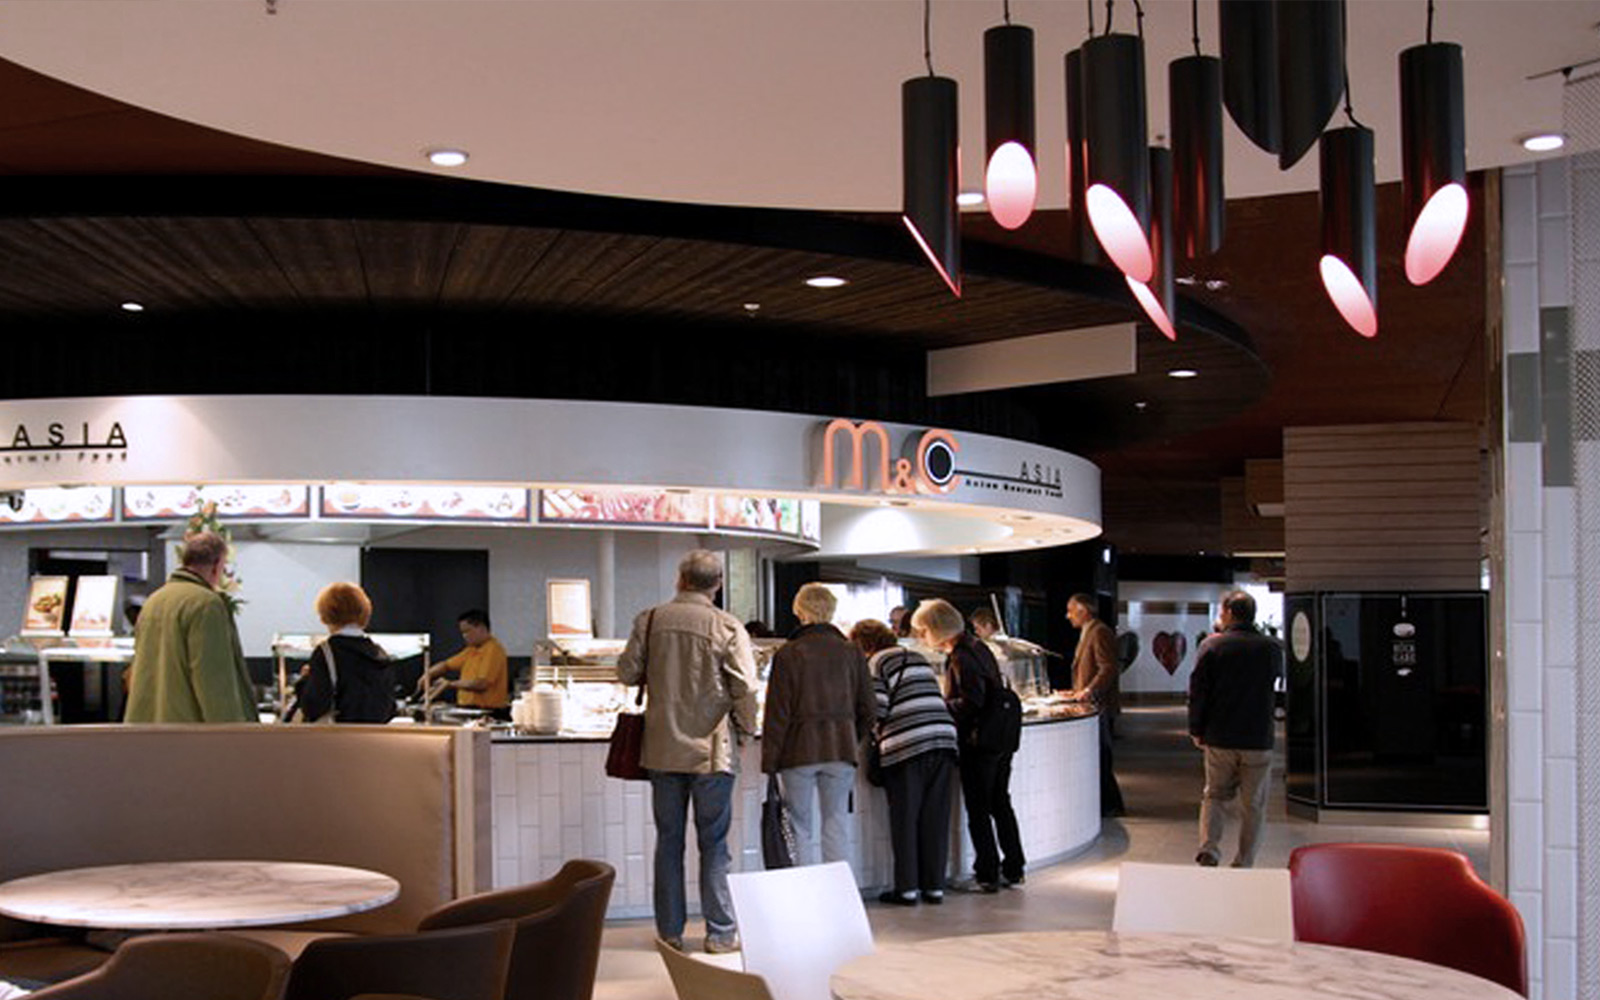 foodcourt food retail outlets